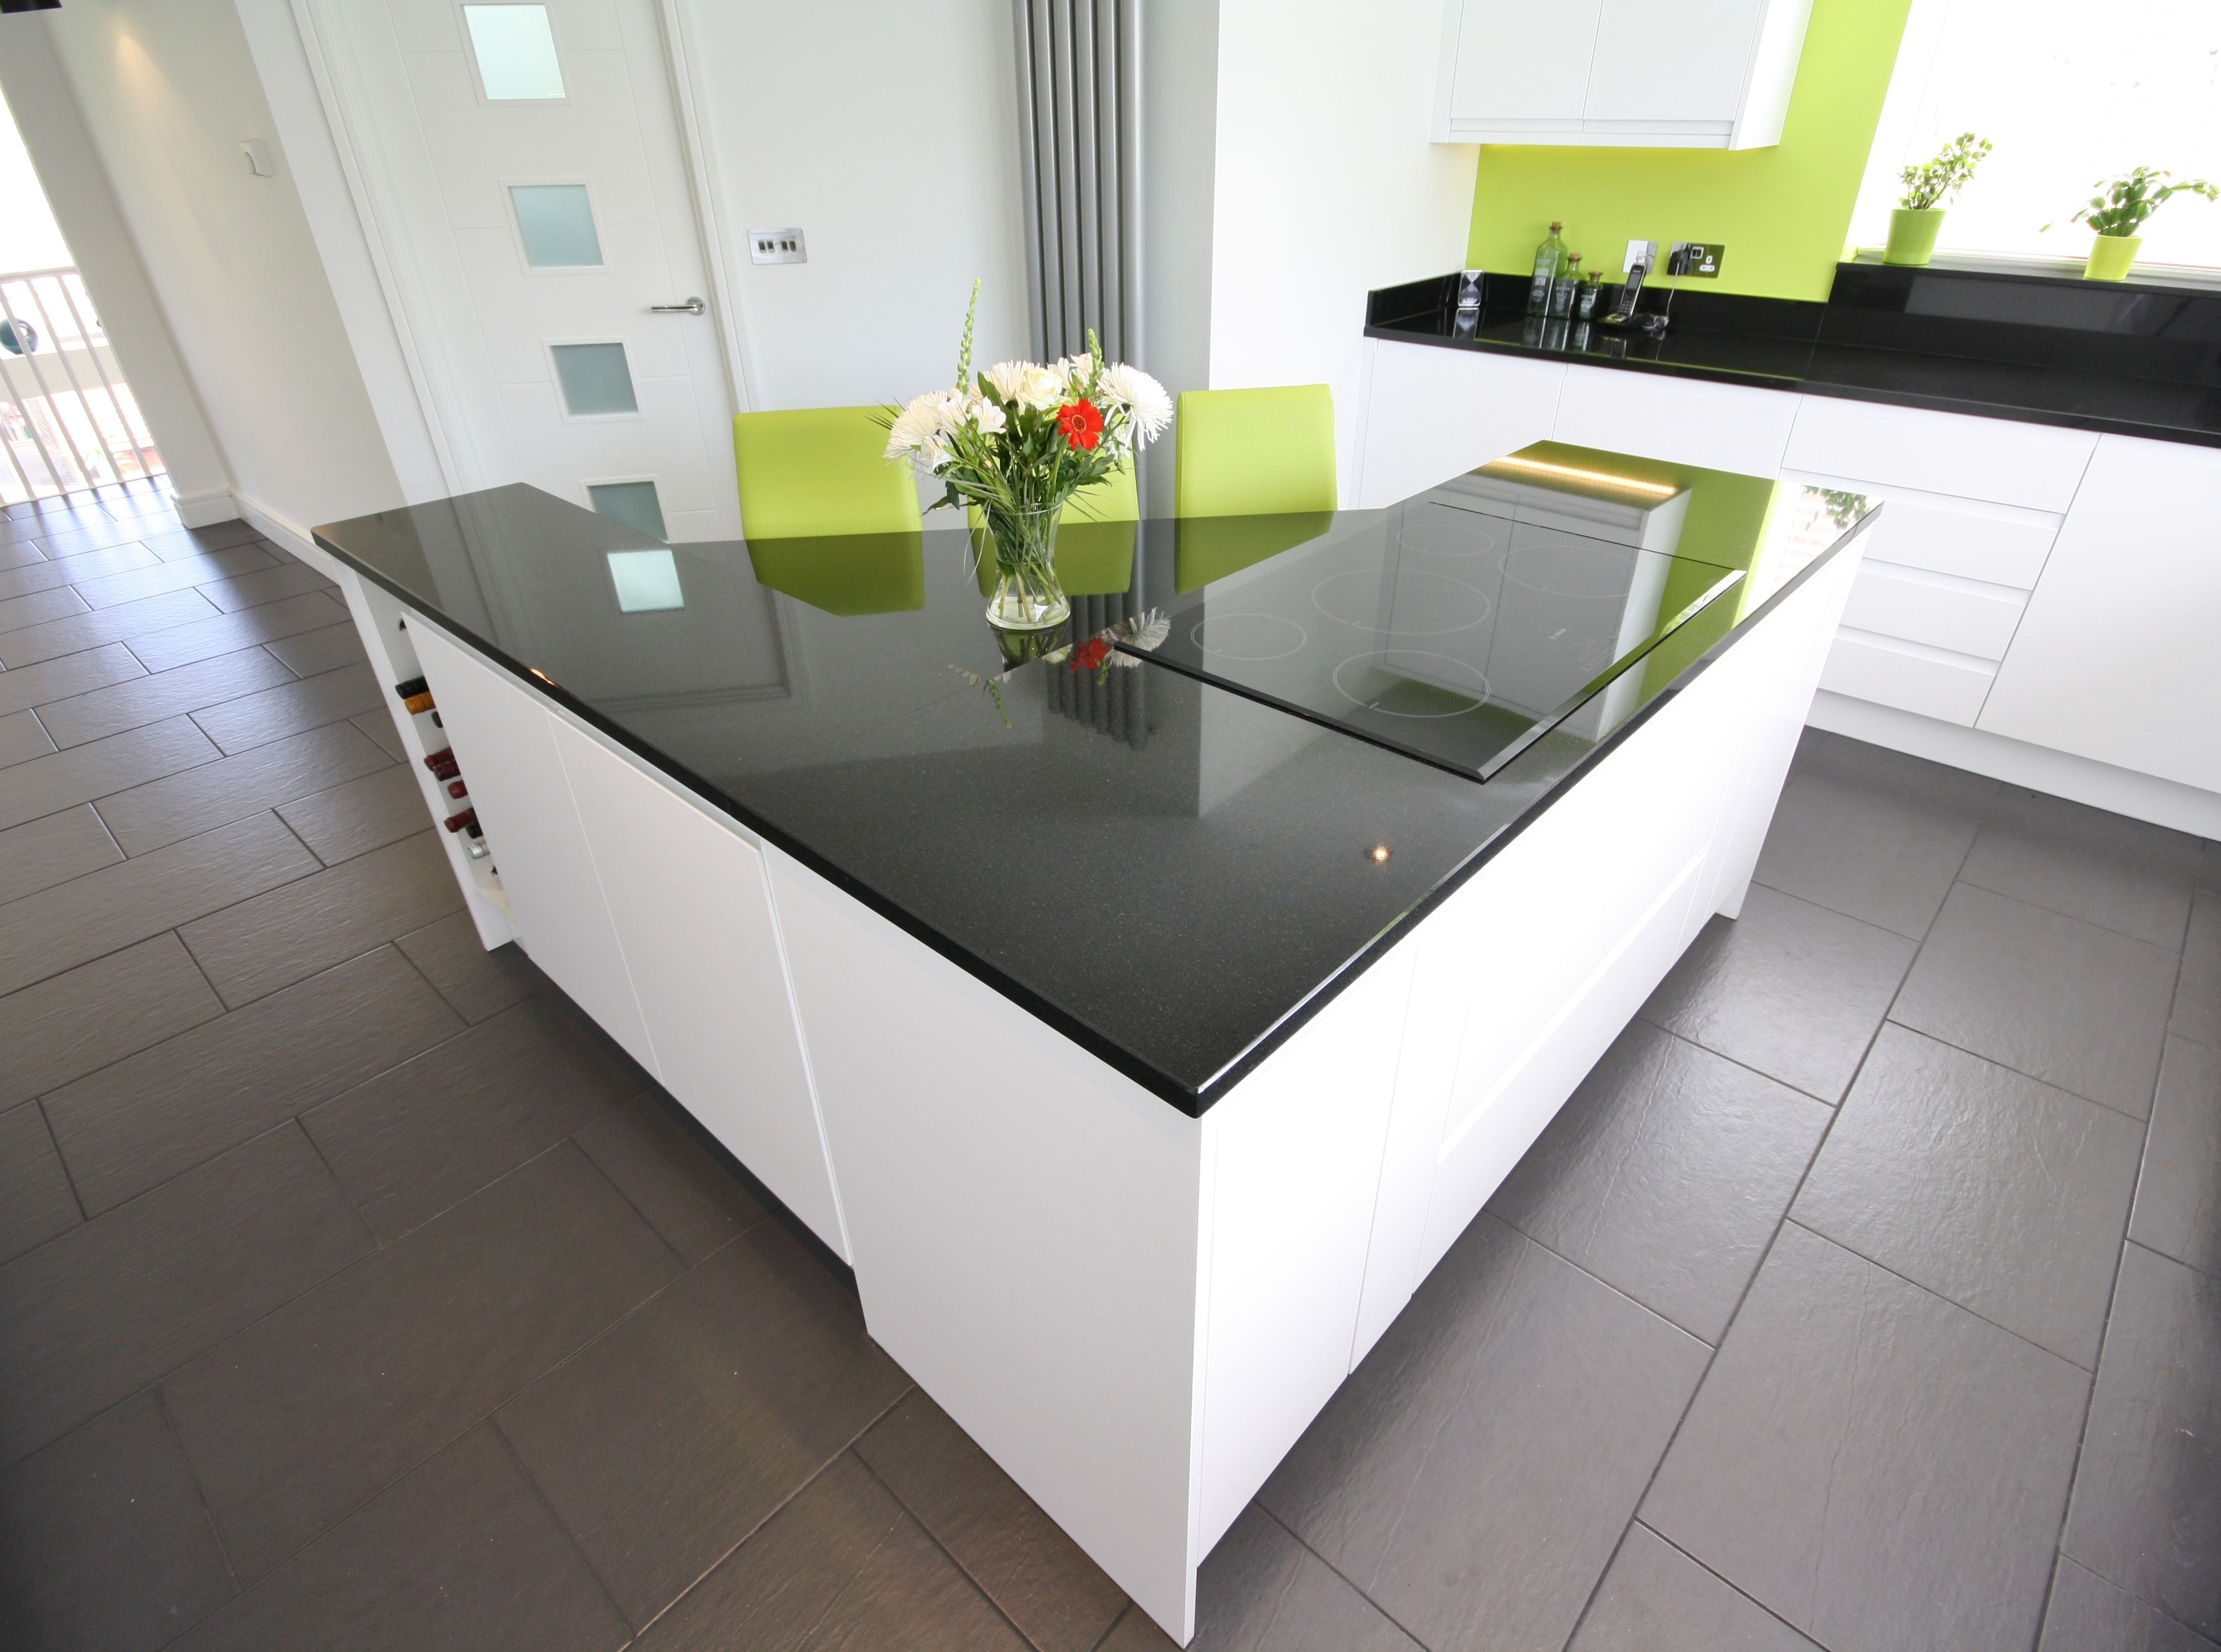 White Kitchen Units Black Worktop second nature - remo white gloss units, black granite worktop and